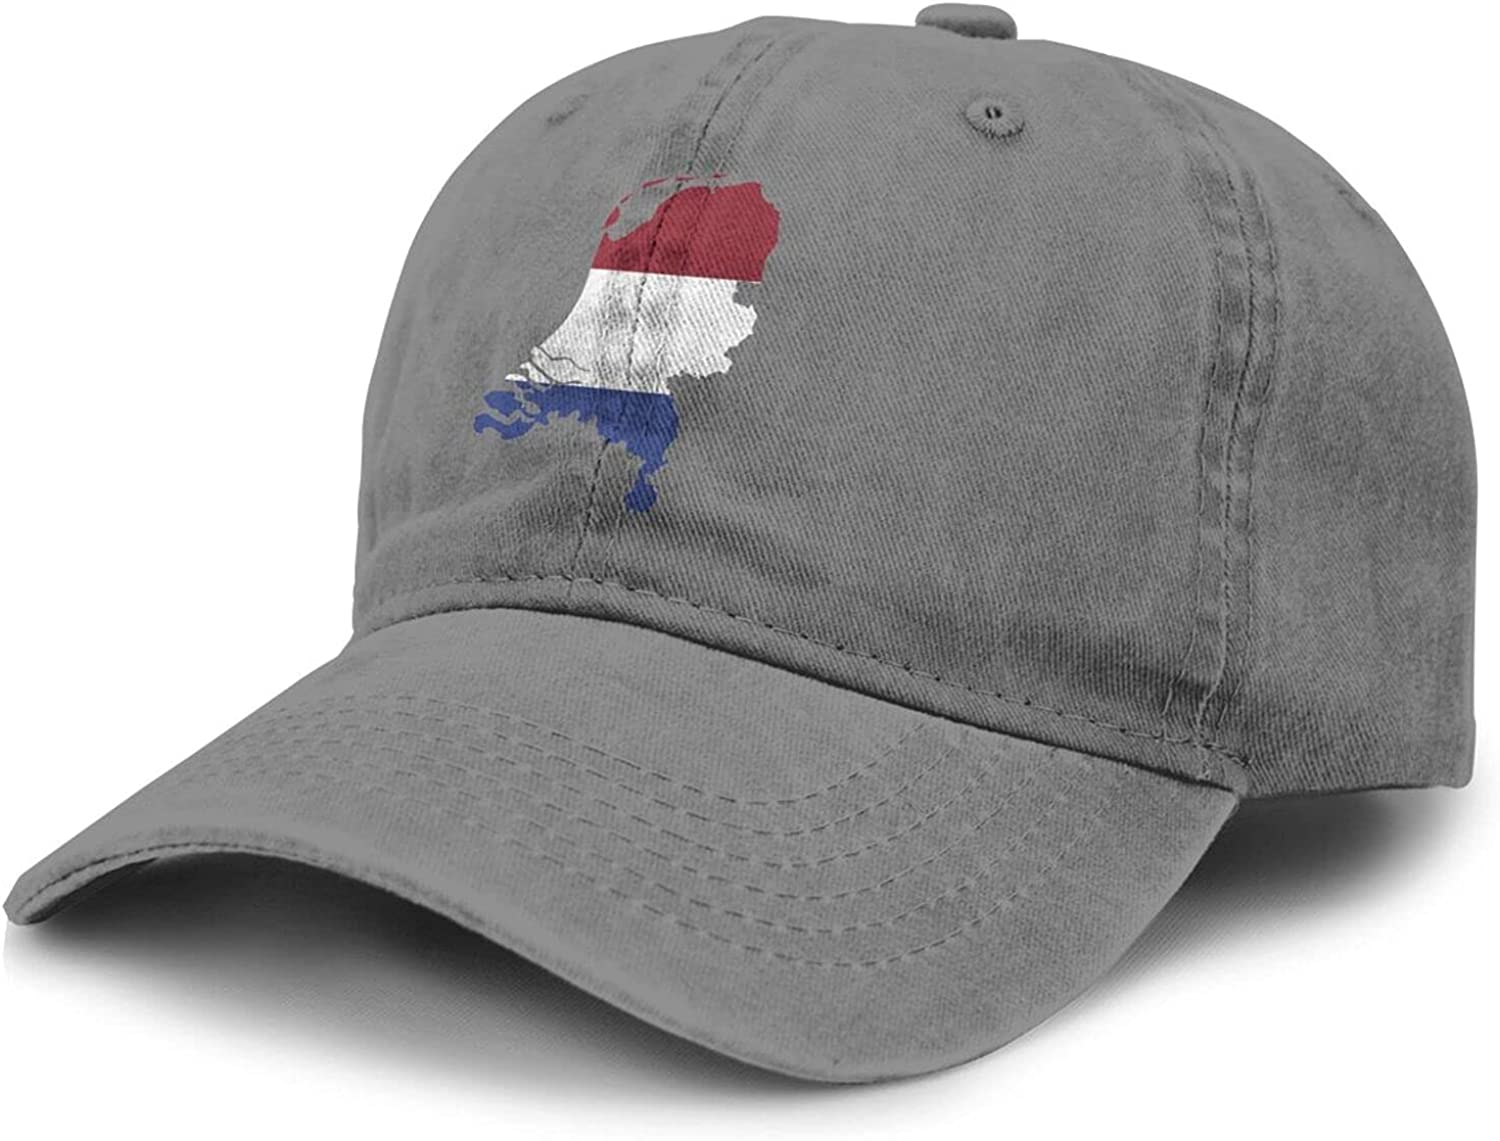 PARKNOTES Netherlands Map Country Max 58% OFF of and Durable Cheap Ad Europe lowest price